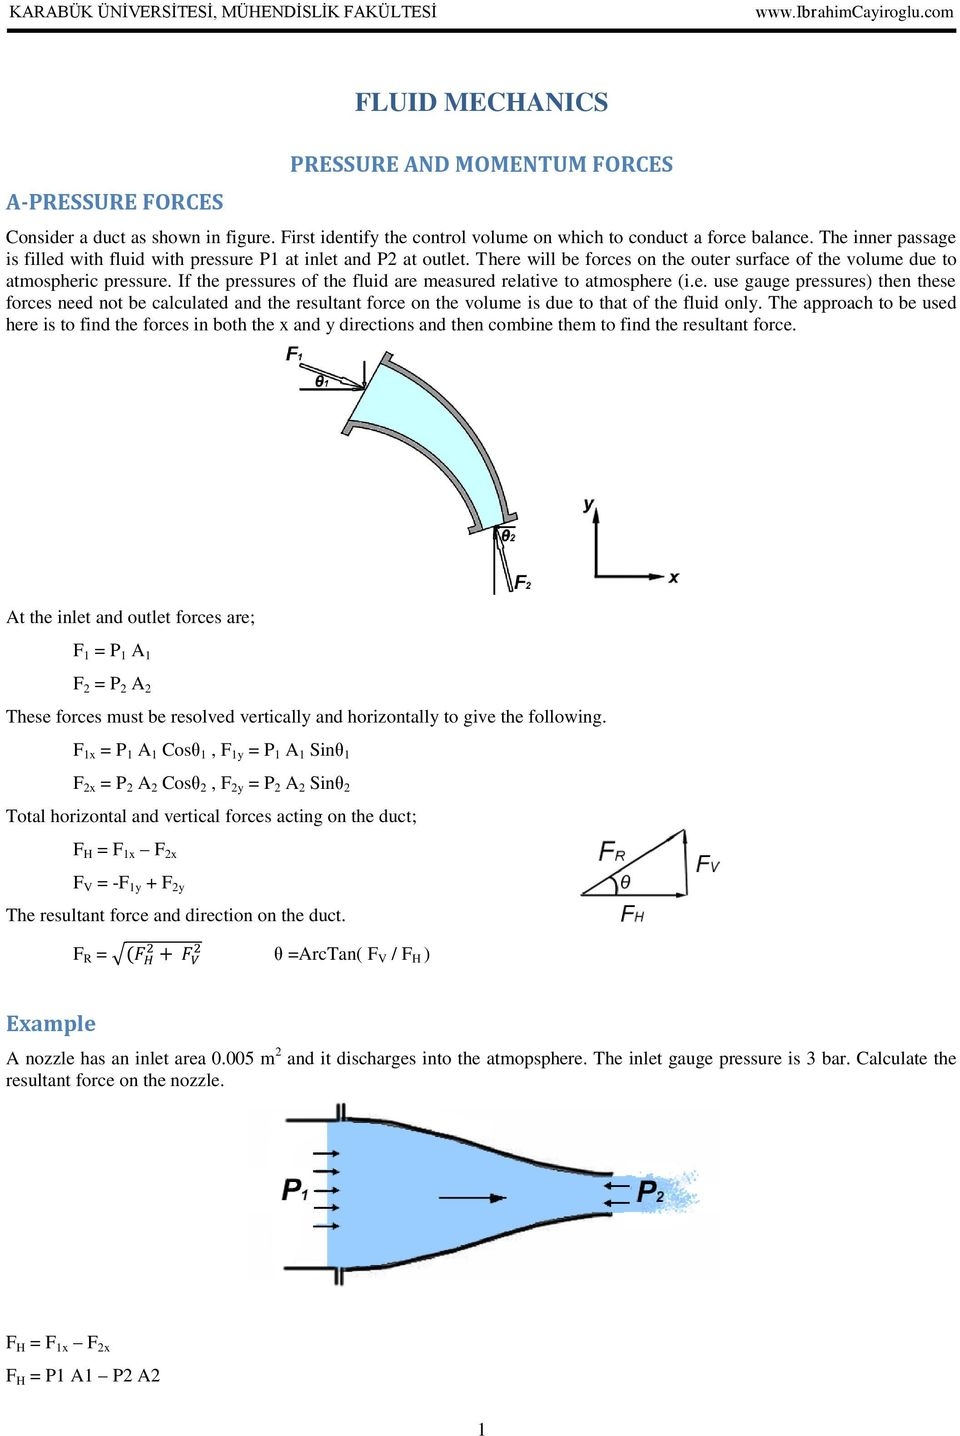 If the pressures of the fluid are measured relative to atmosphere (i.e. use gauge pressures) then these forces need not be calculated and the resultant force on the volume is due to that of the fluid only.